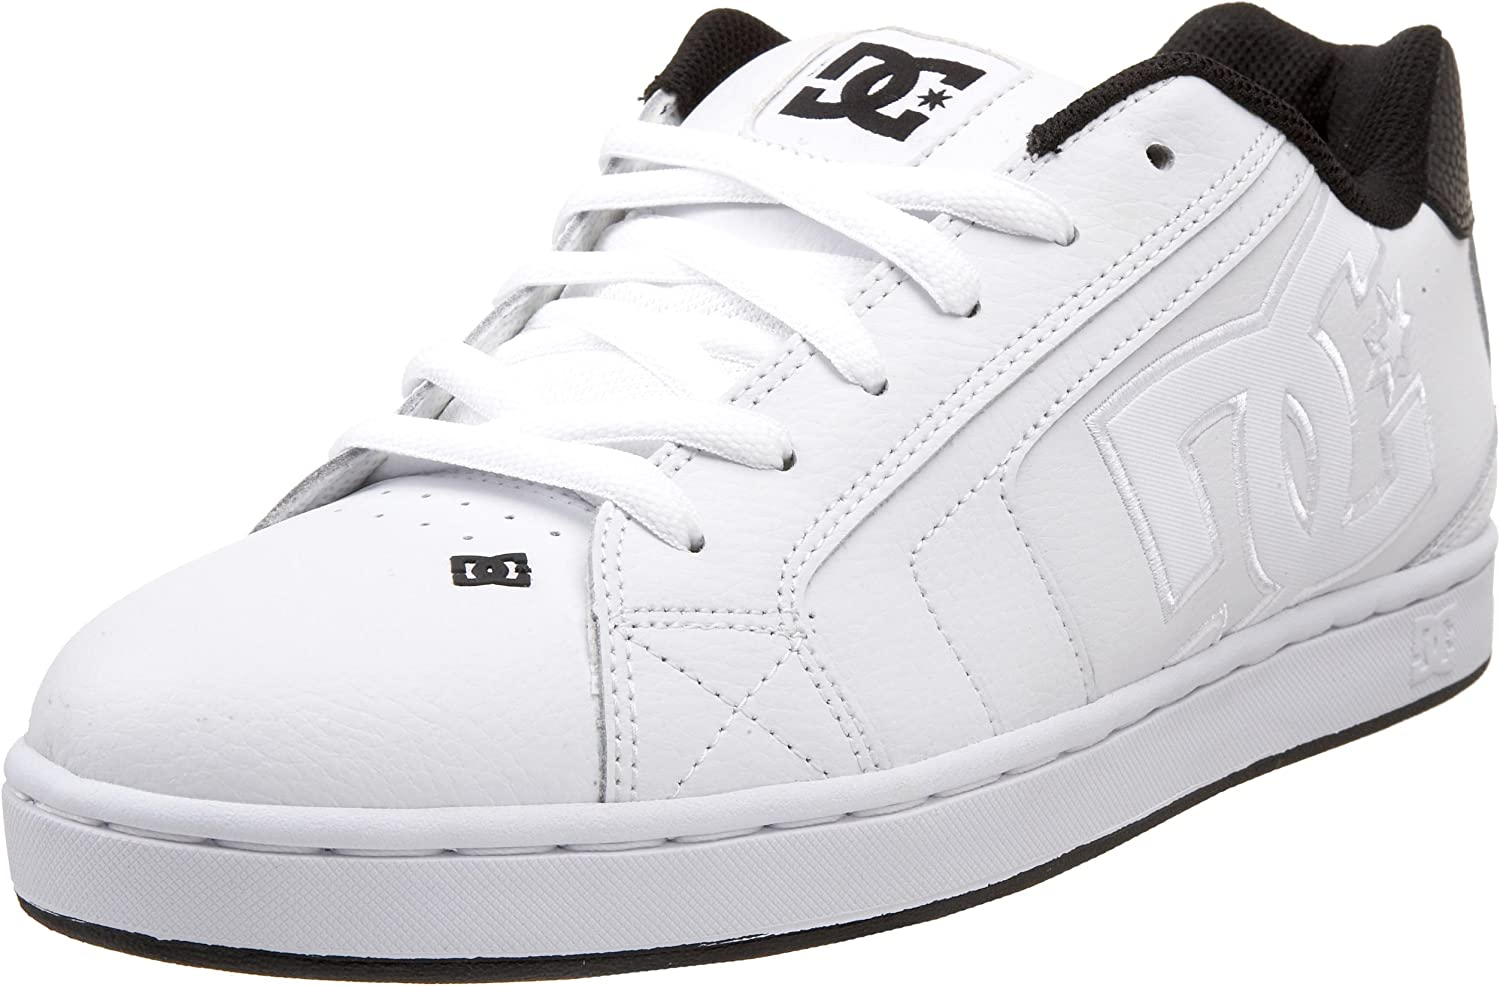 DC Men's Net Action Sports shoes